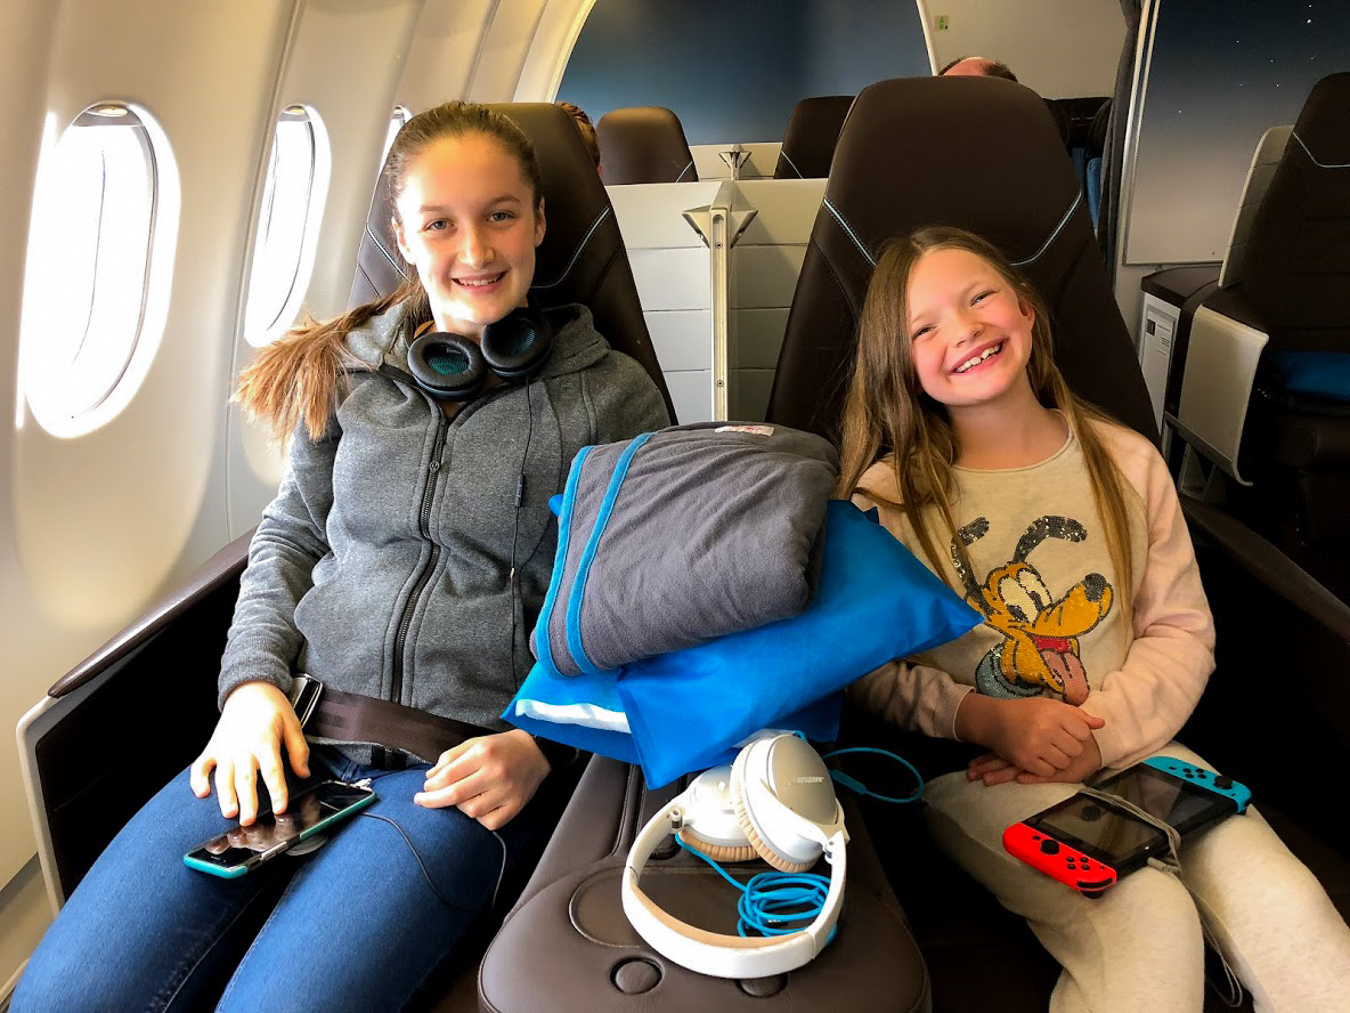 Two girls sitting in first class airplane seats